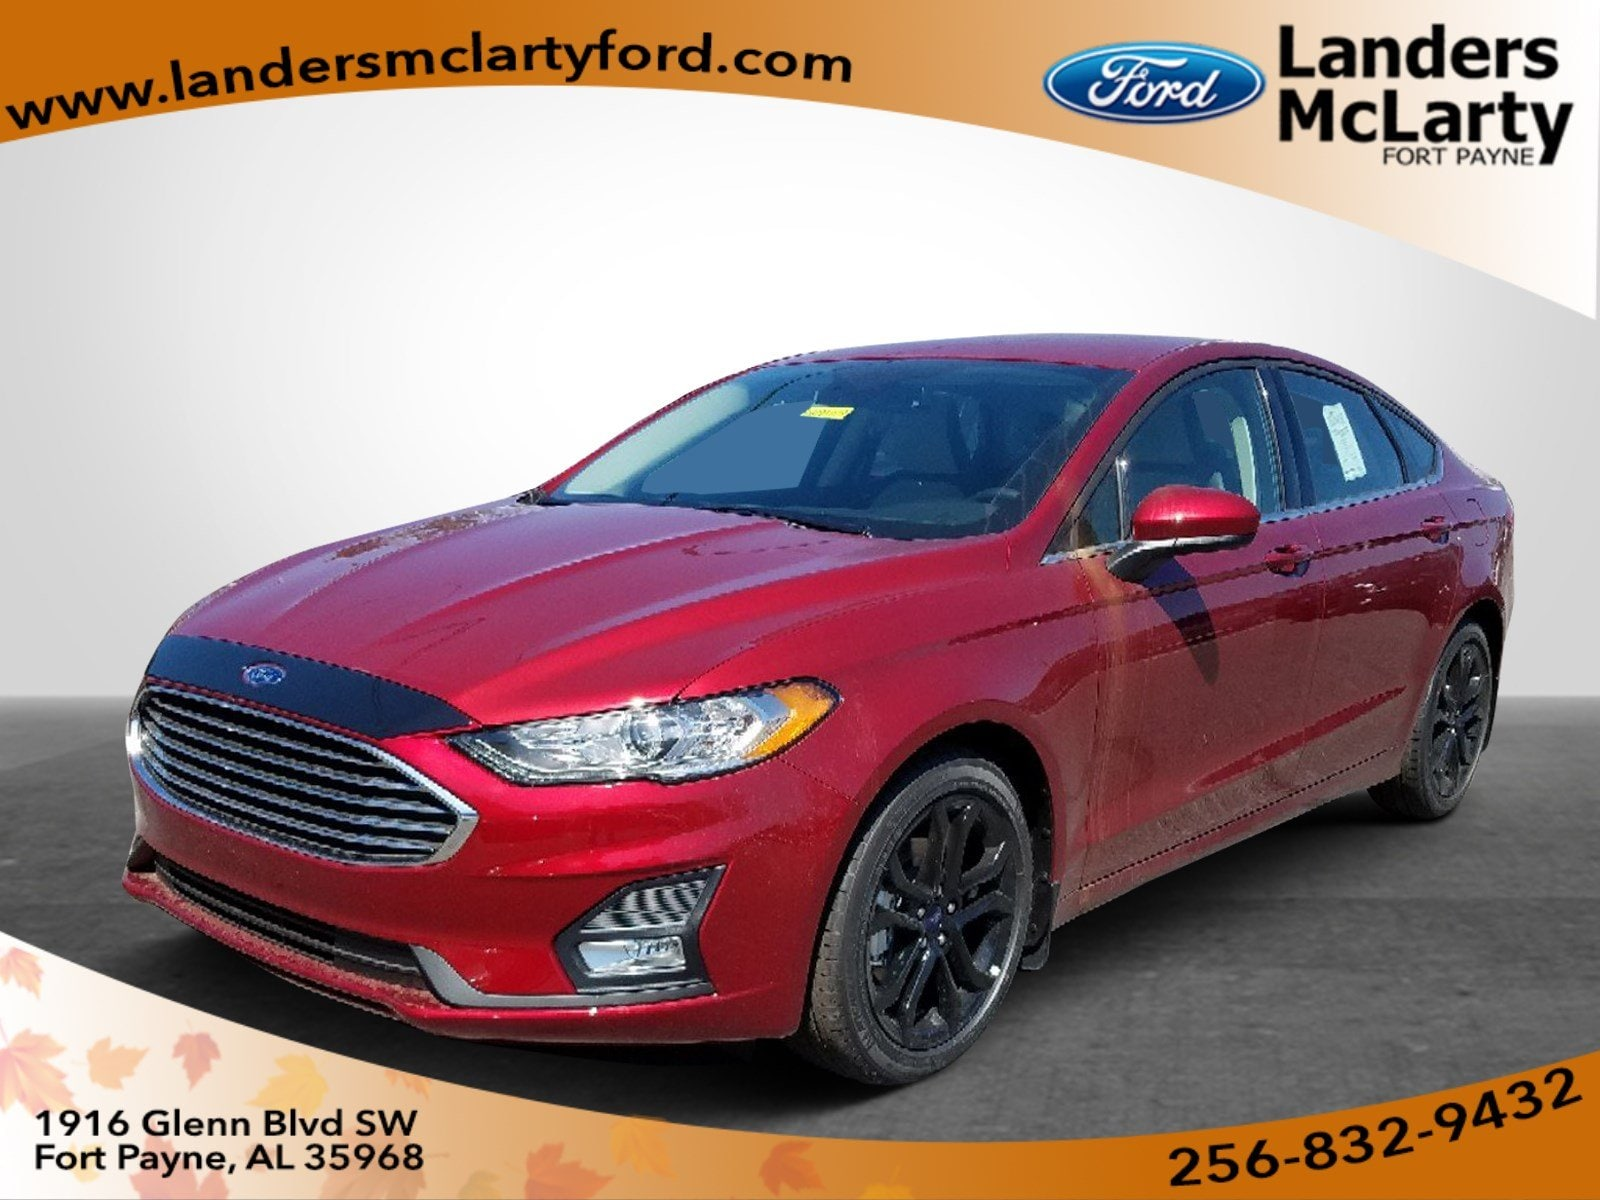 Landers Mclarty Ford >> New 2019 Ford Fusion For Sale At Landers Mclarty Ford Of